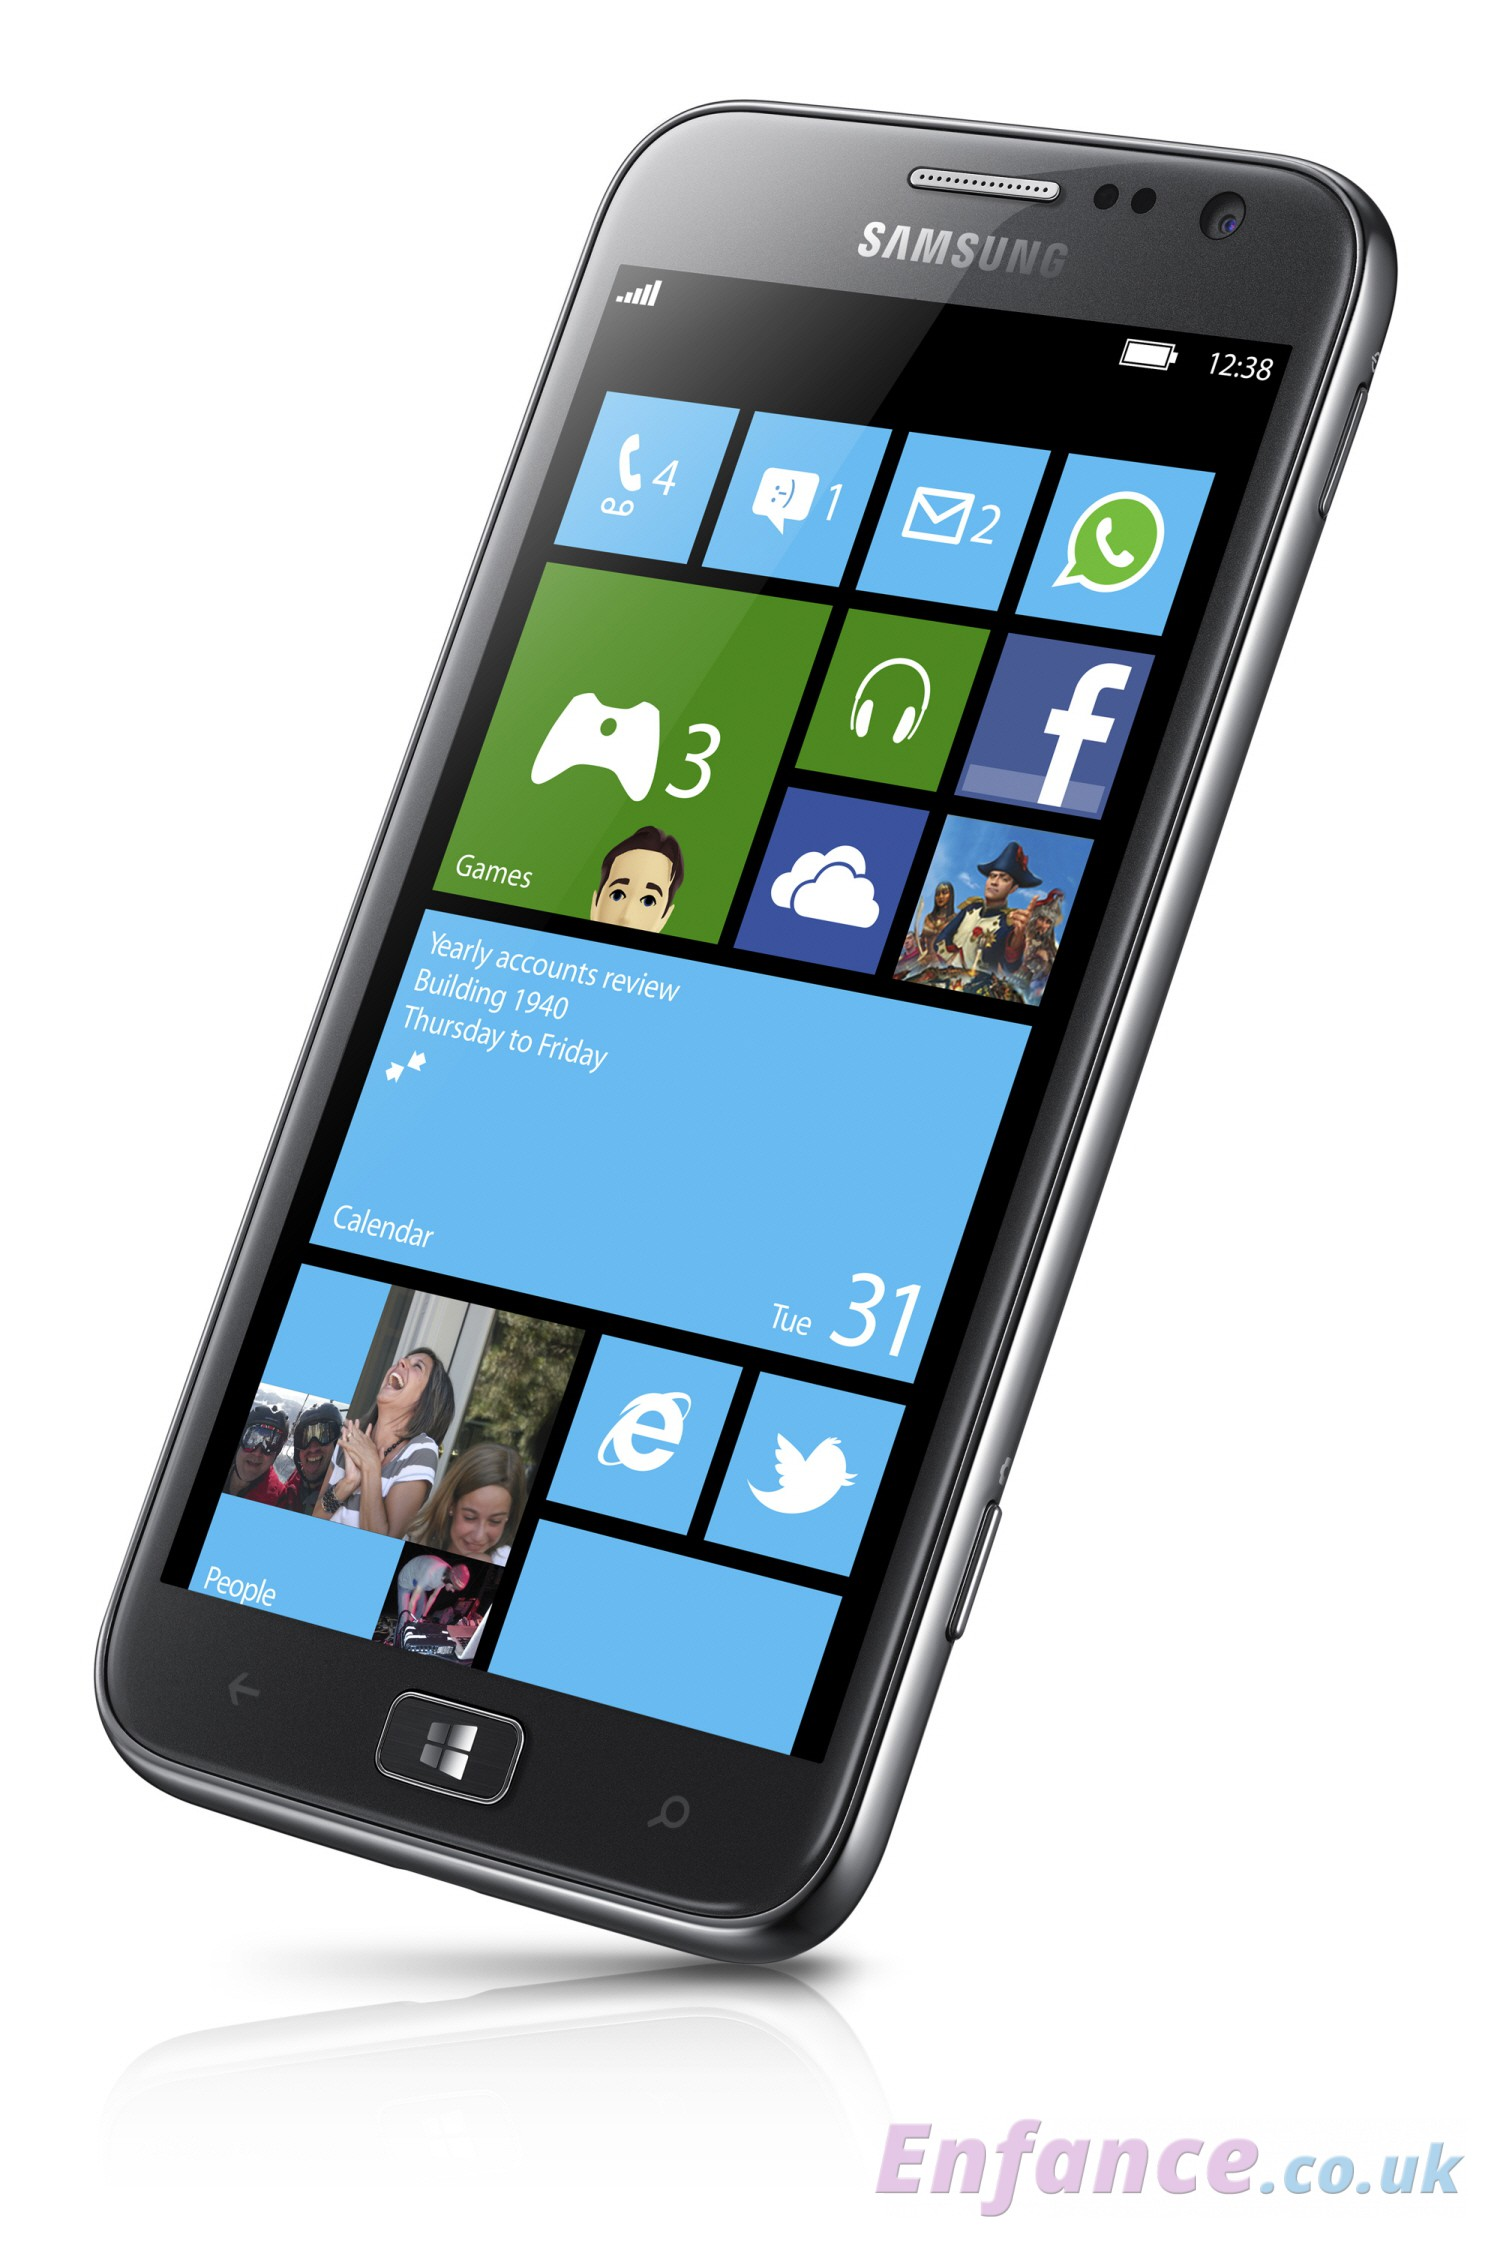 samsung-windows-phone-8-ativ-smartphone-slanted-angle